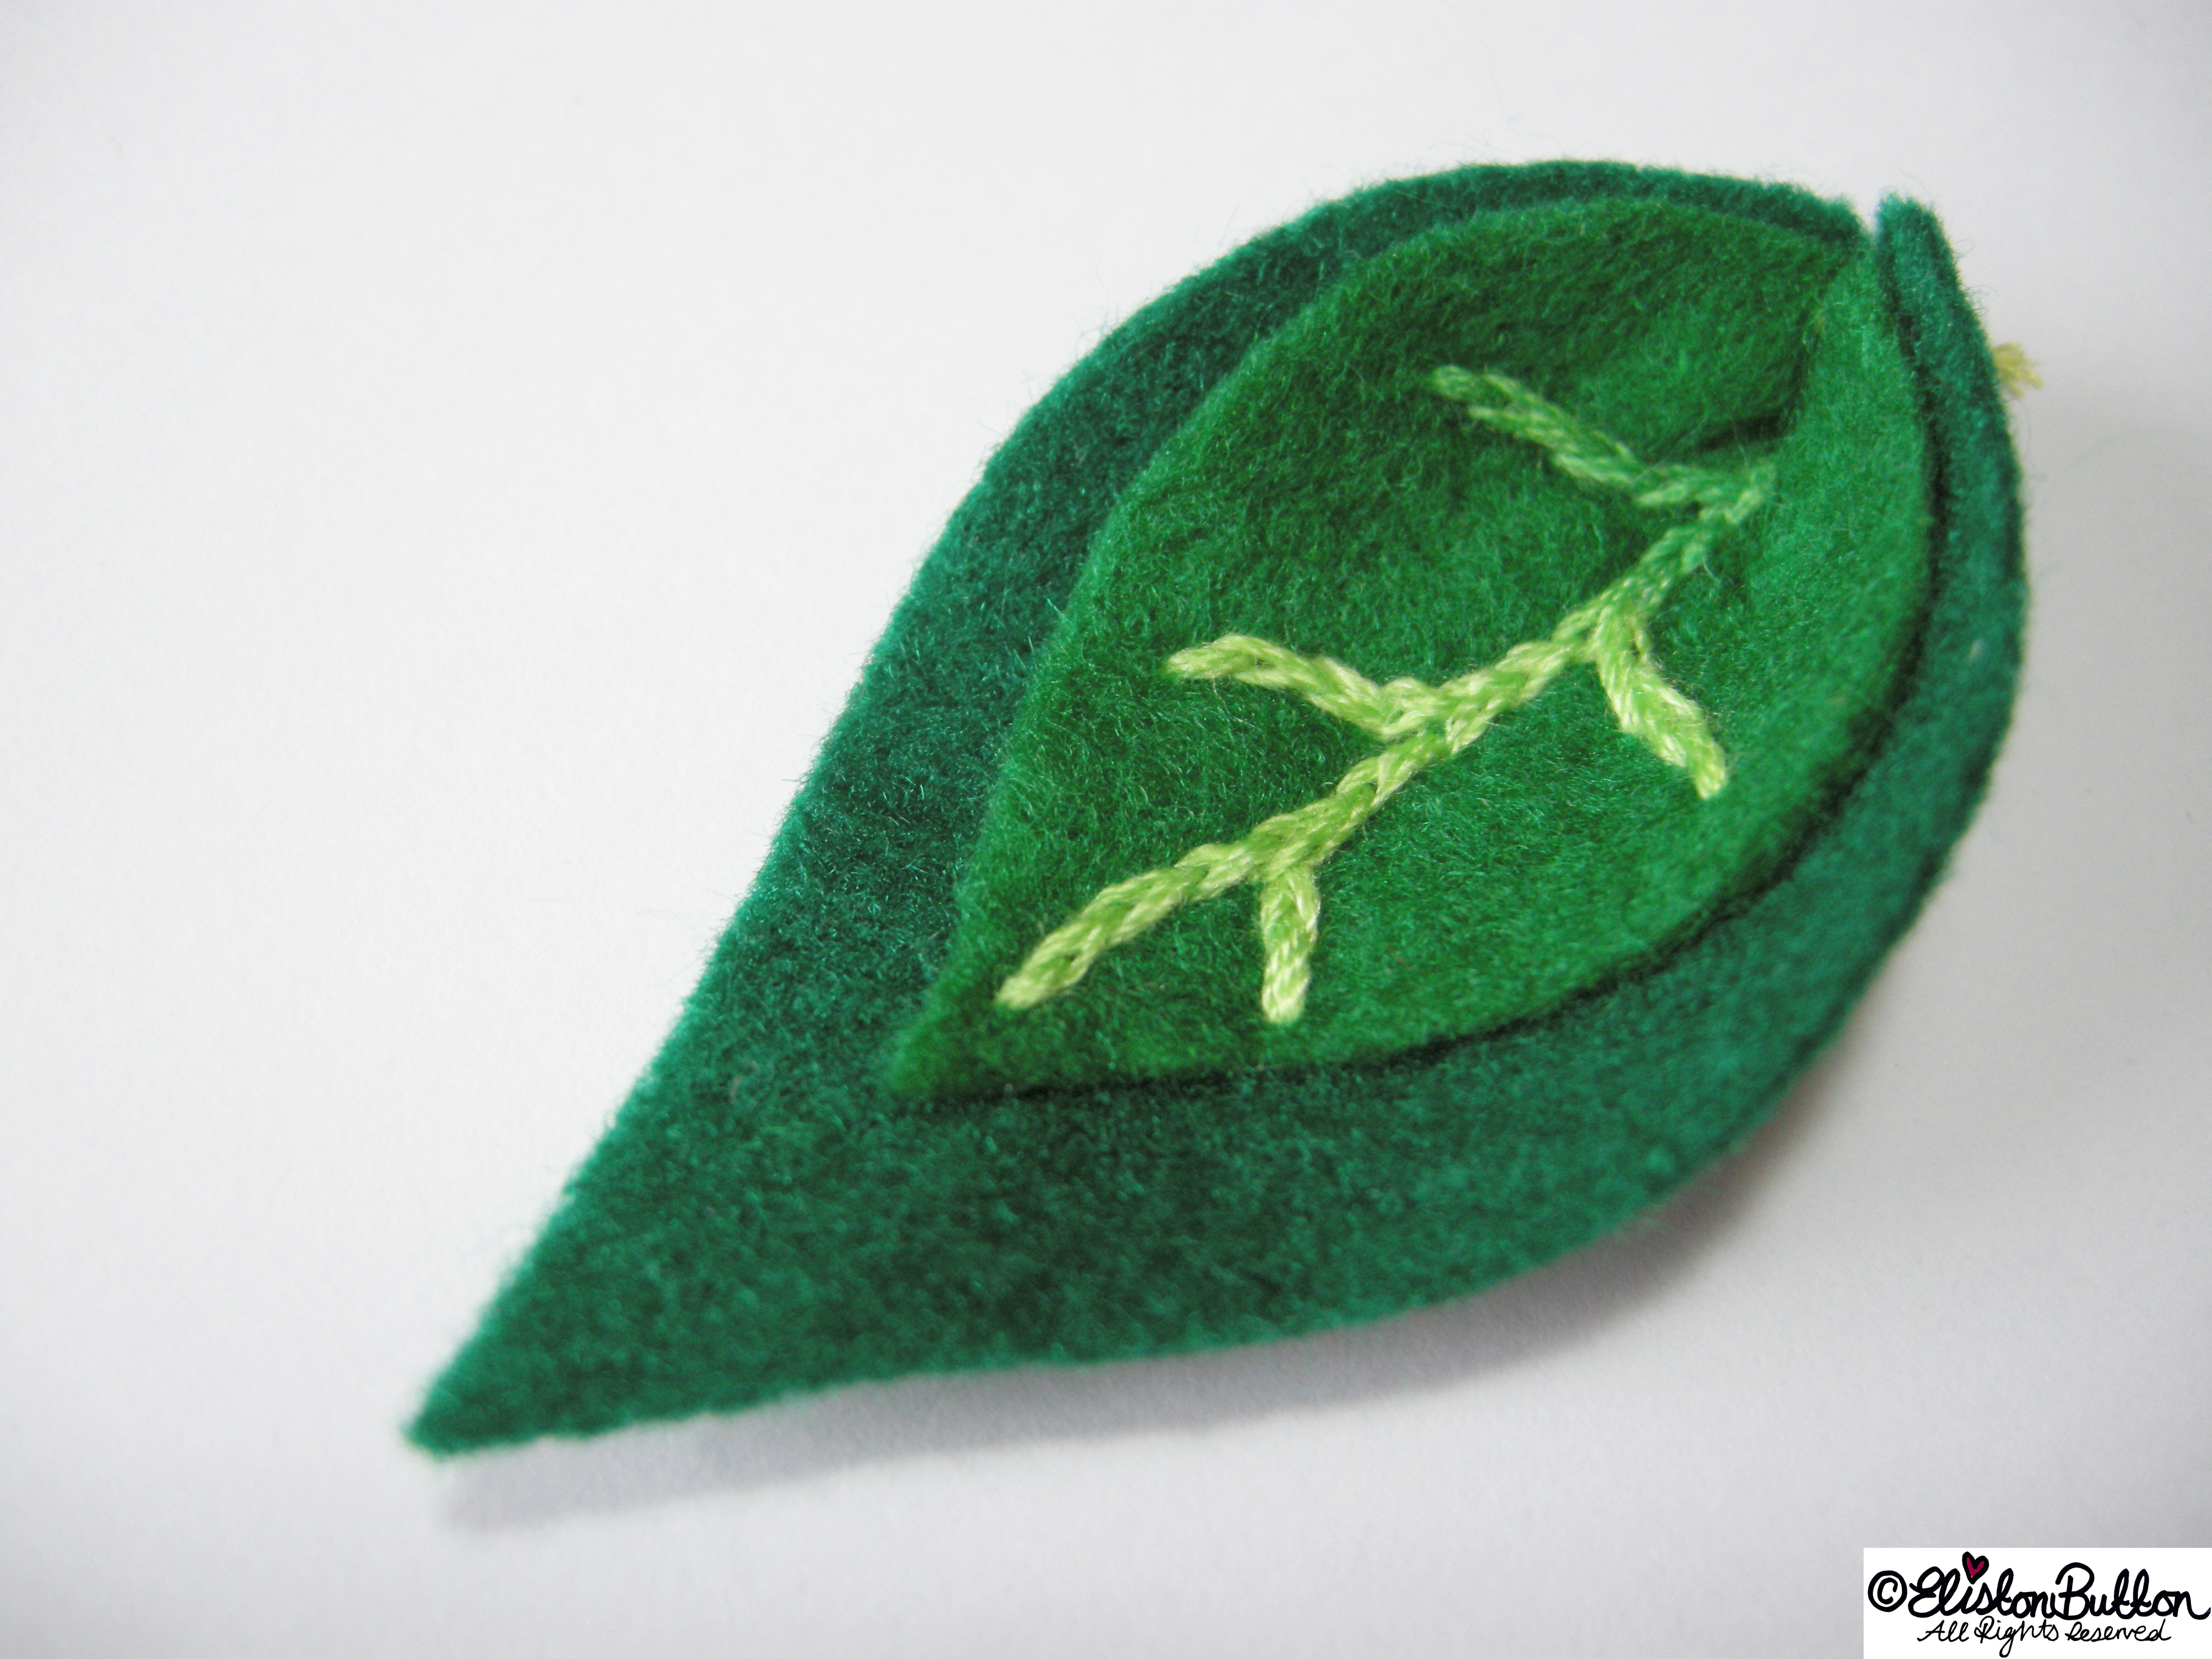 Shades of Green Felt Leaf Shapes Embroidered Detail - 27 Before 27 - Leafy Greens at www.elistonbutton.com - Eliston Button - That Crafty Kid – Art, Design, Craft & Adventure.